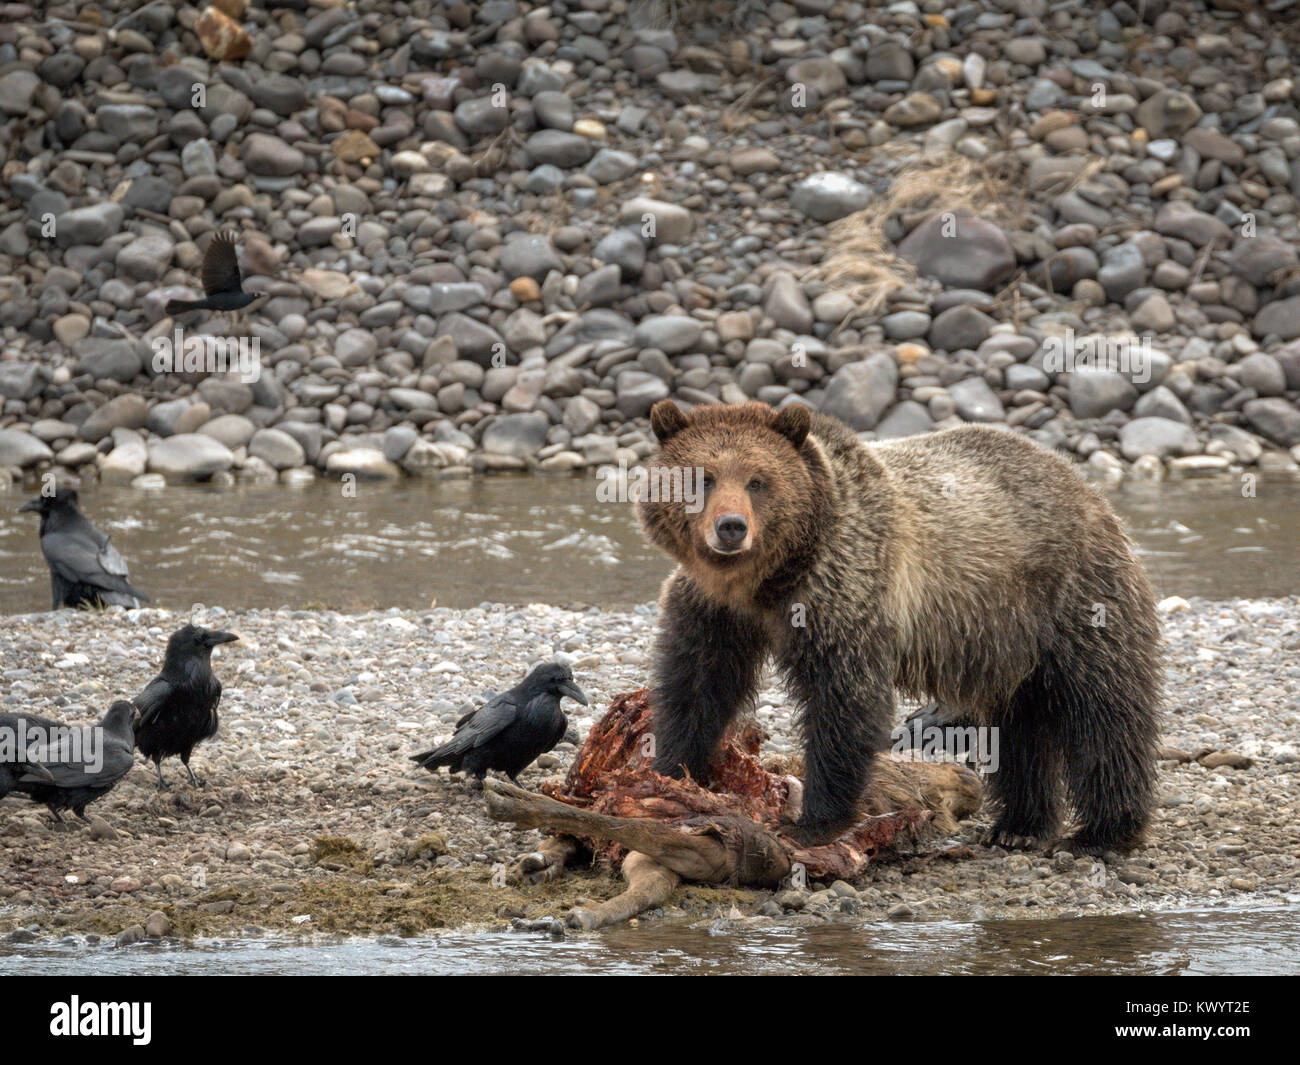 Grizzly Bear and Ravens share elk kill Yellowstone National Park - Stock Image